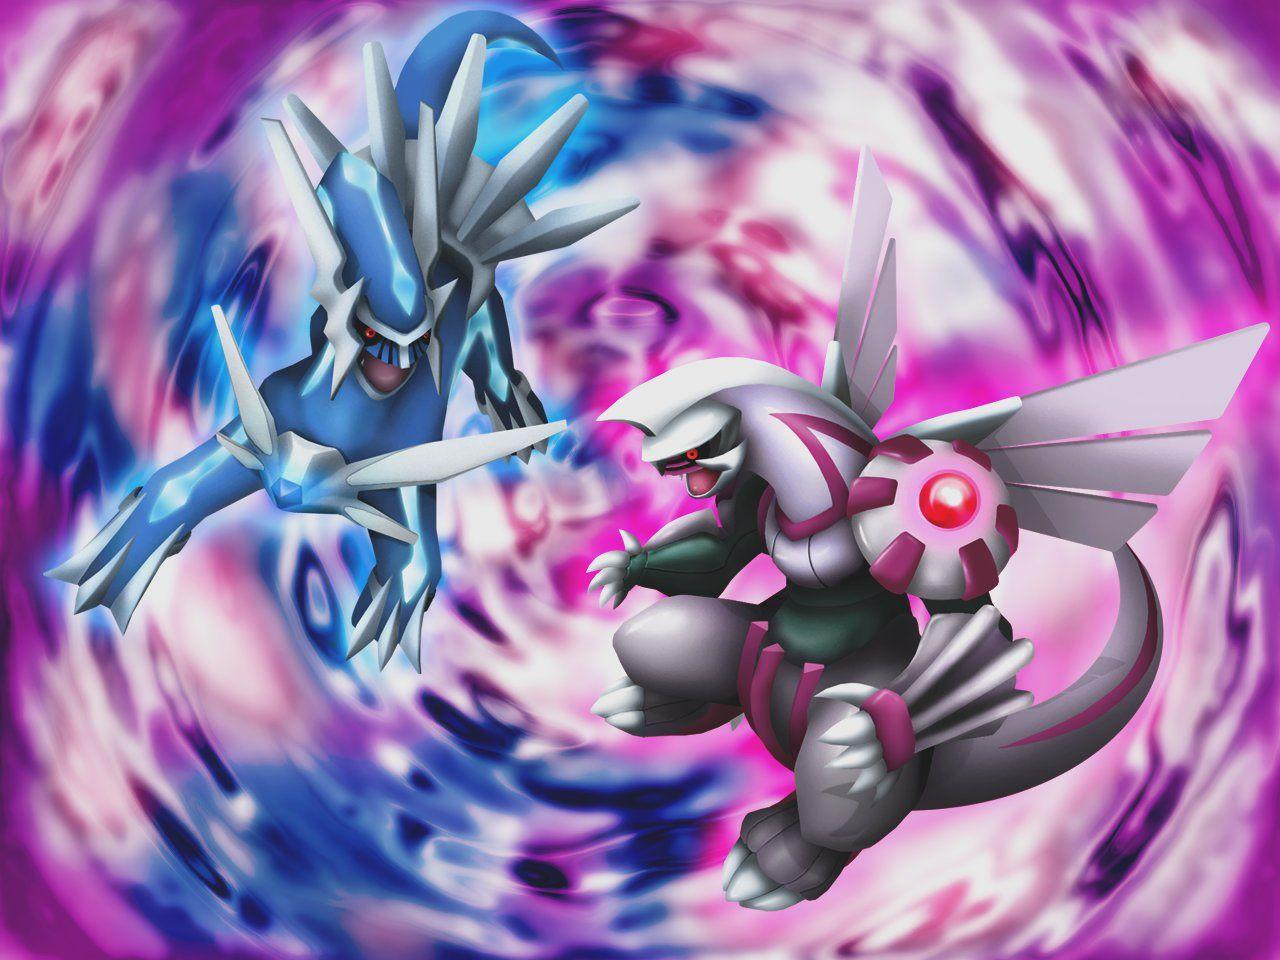 3D Dialga and Palkia Wallpapers by Keh